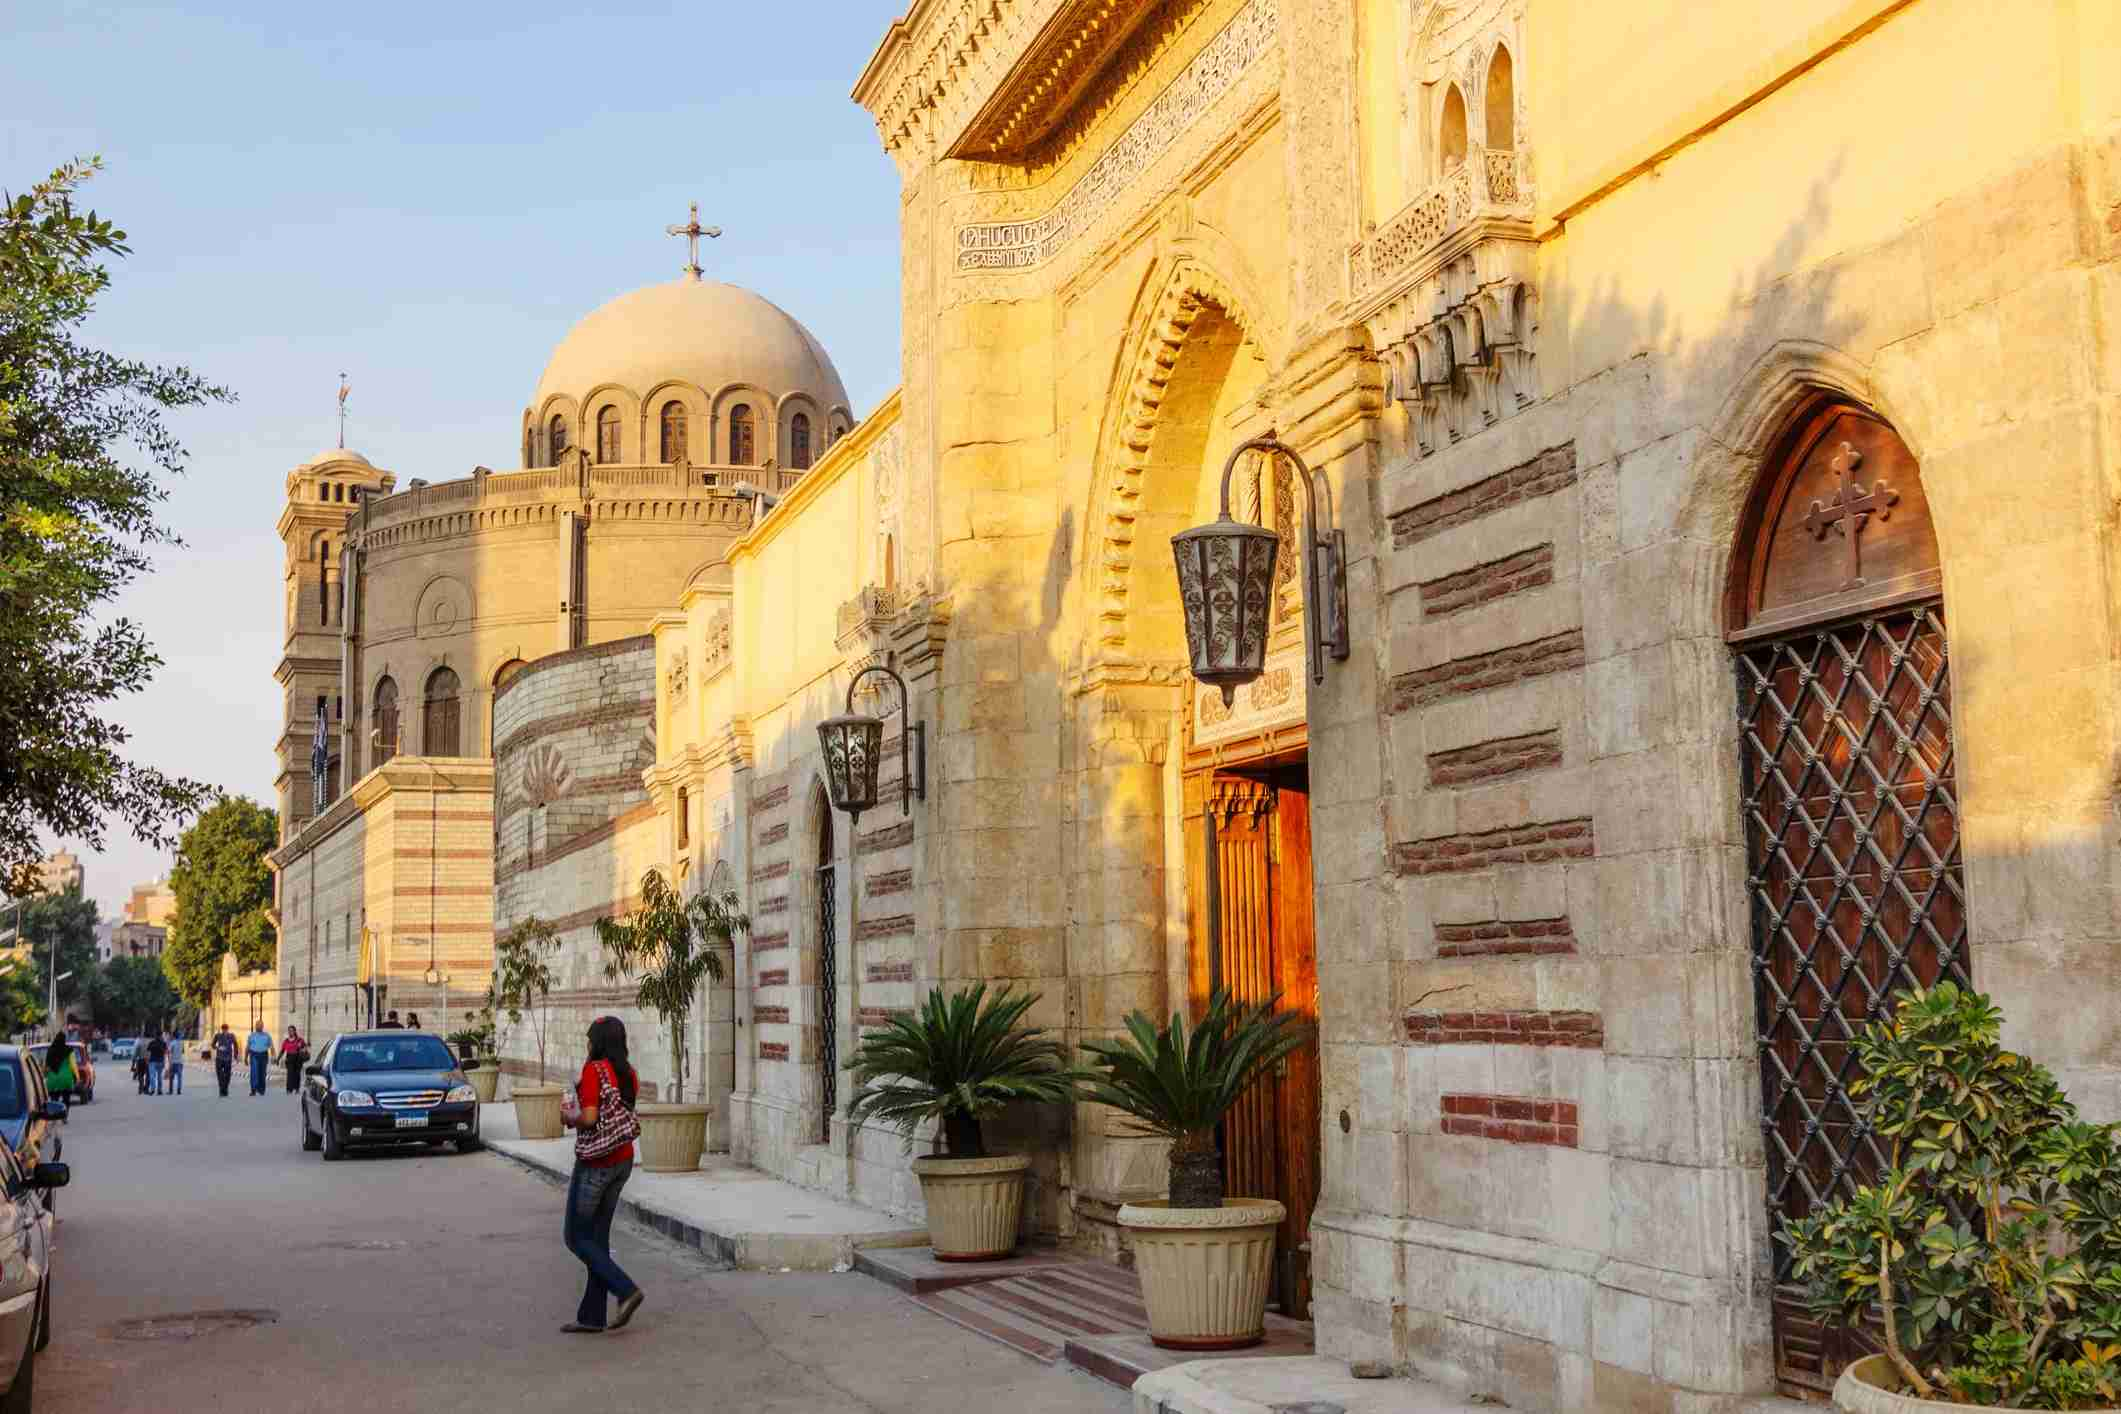 Main gate of the Hanging Church and church of Saint George in background. Coptic Cairo, Egypt. (Photo via Getty Images)